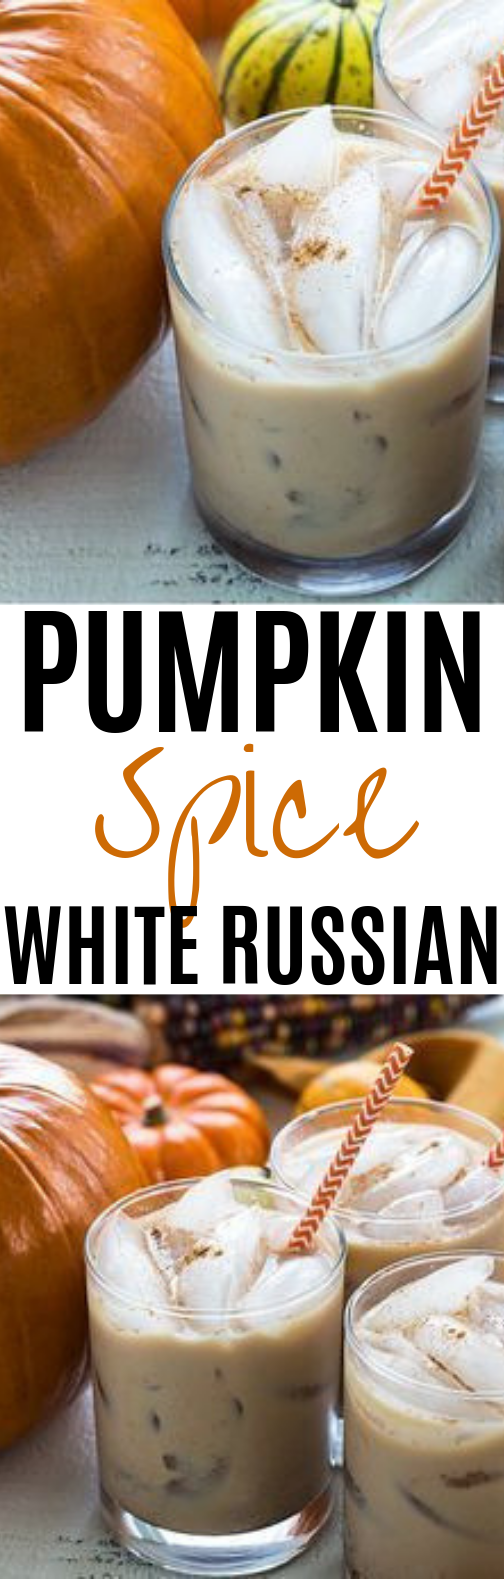 Pumpkin Spice White Russians #fall #drinks